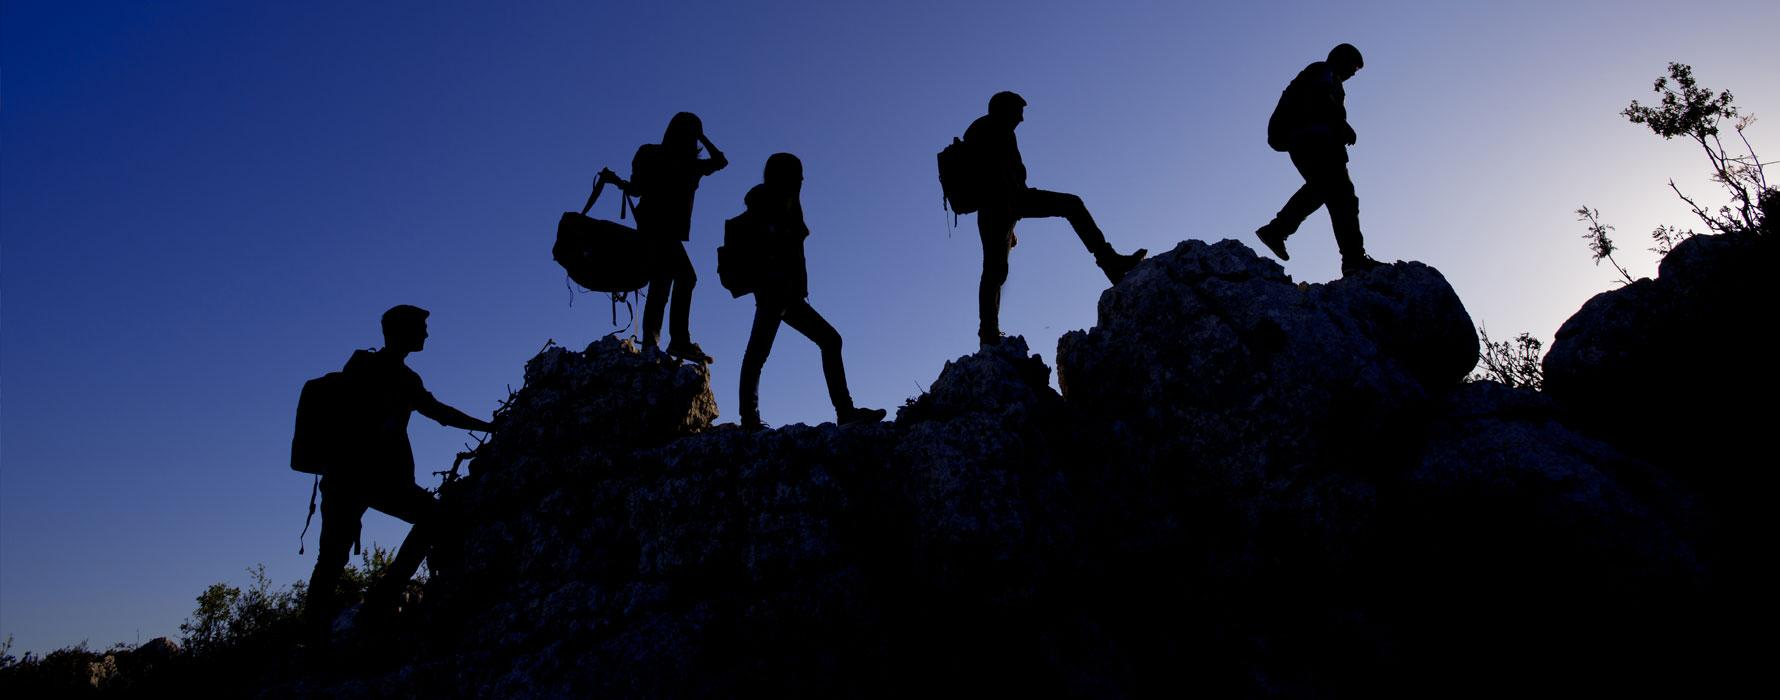 Hikers on a ridge in silhouette